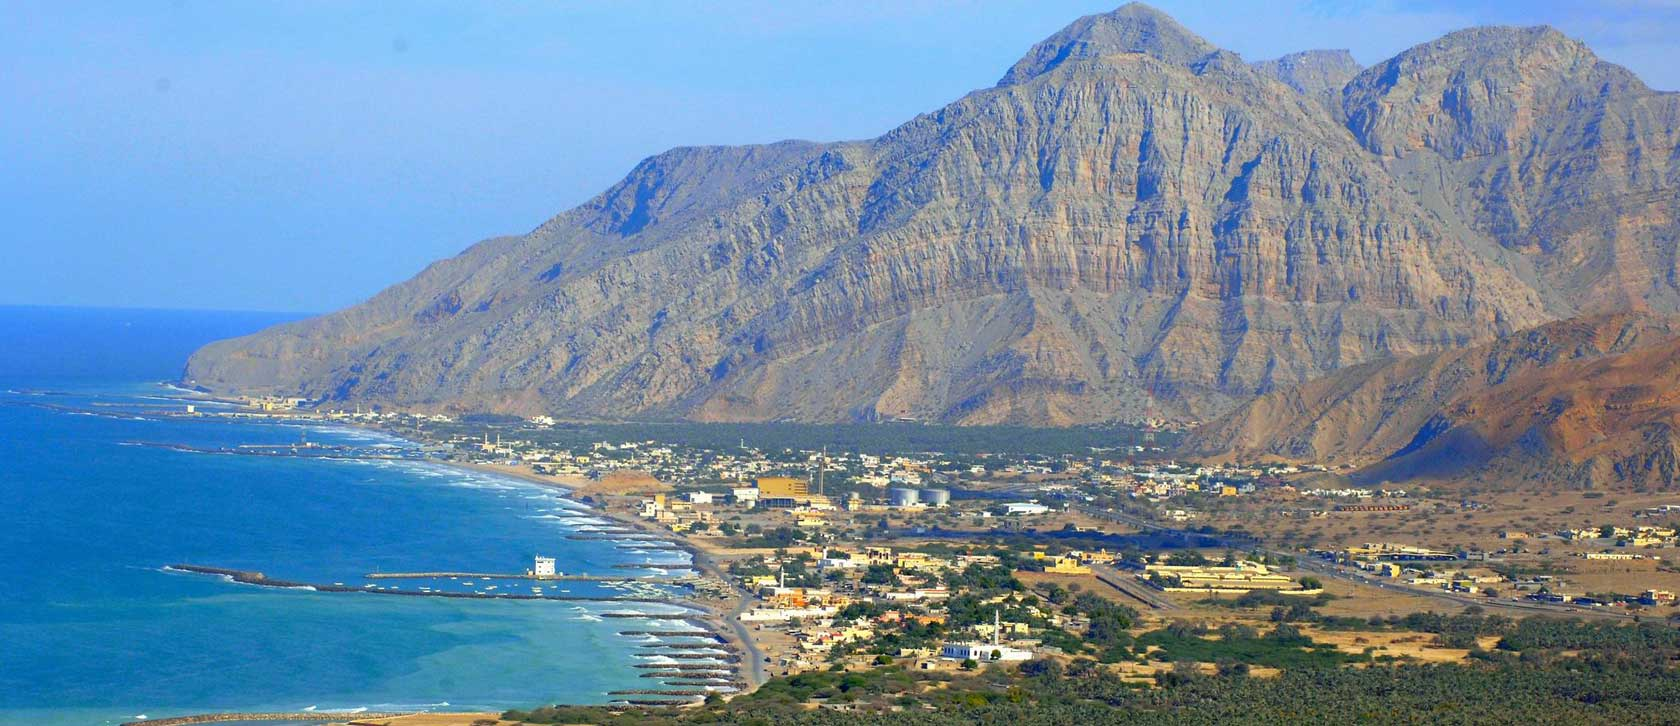 List of Free Zones in Ras Al Khaimah